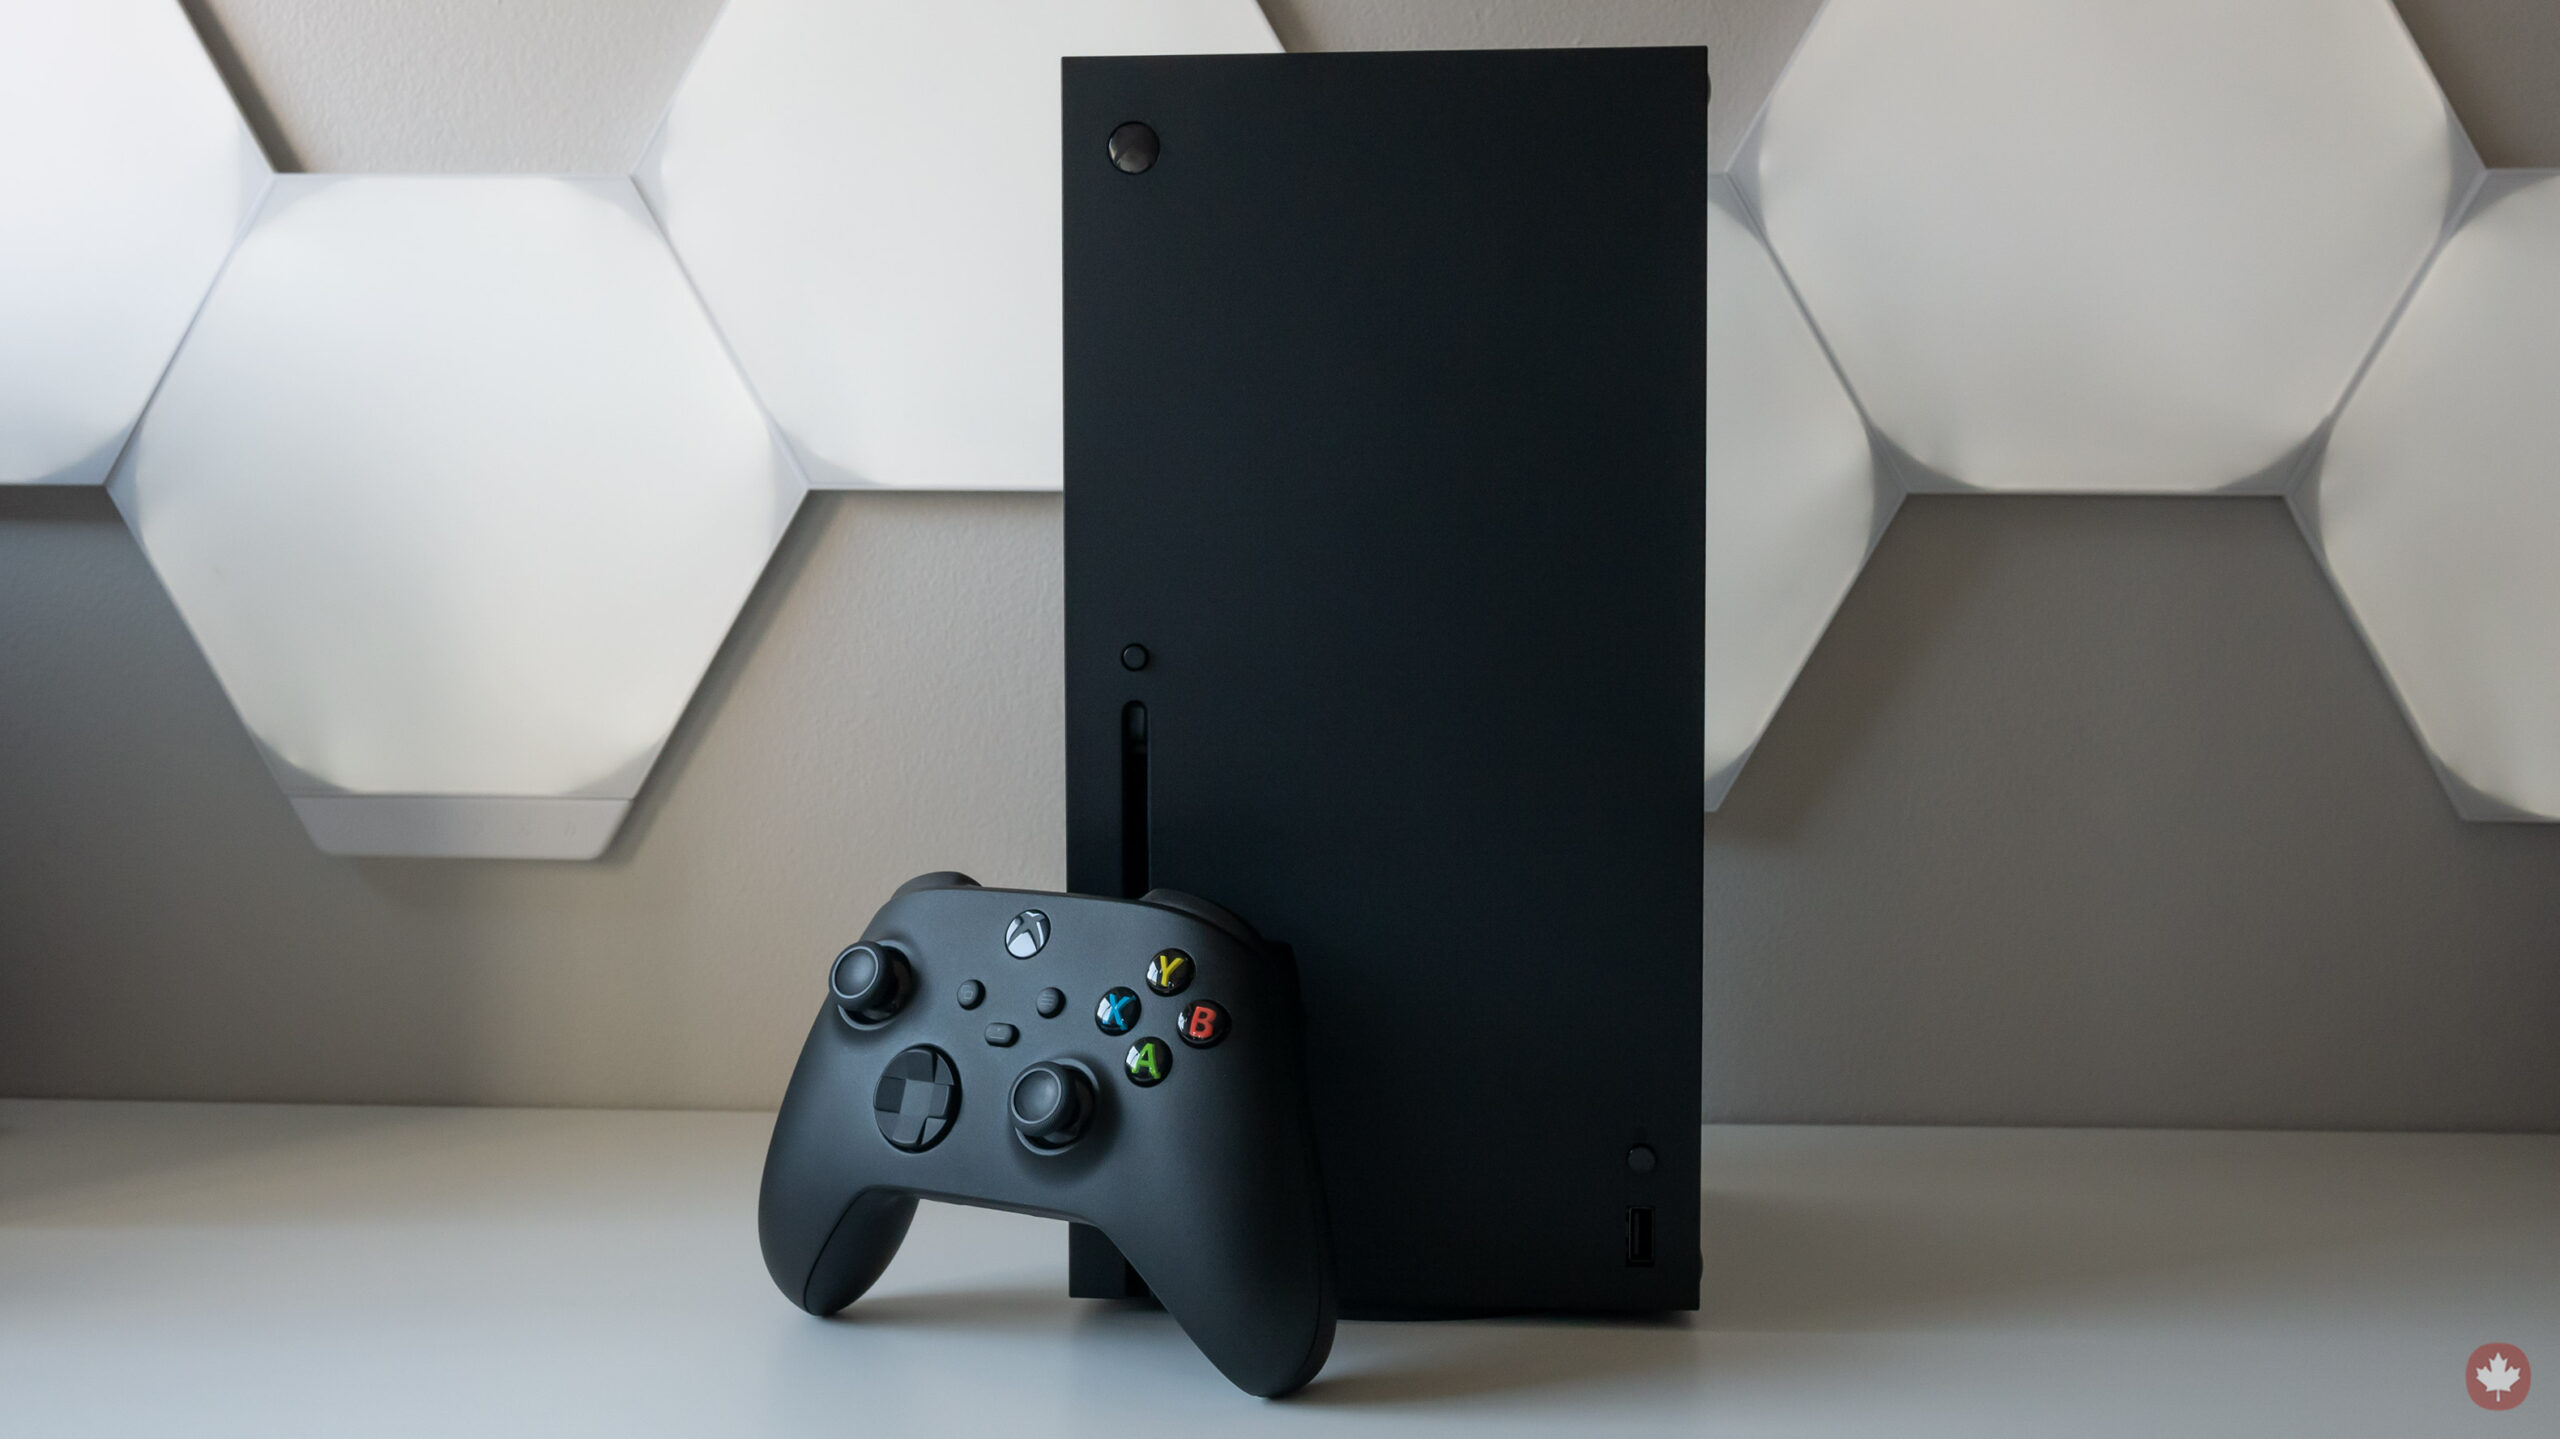 An Early Hands On Look At The Xbox Series X S Design Faster Load Times And Quick Resume